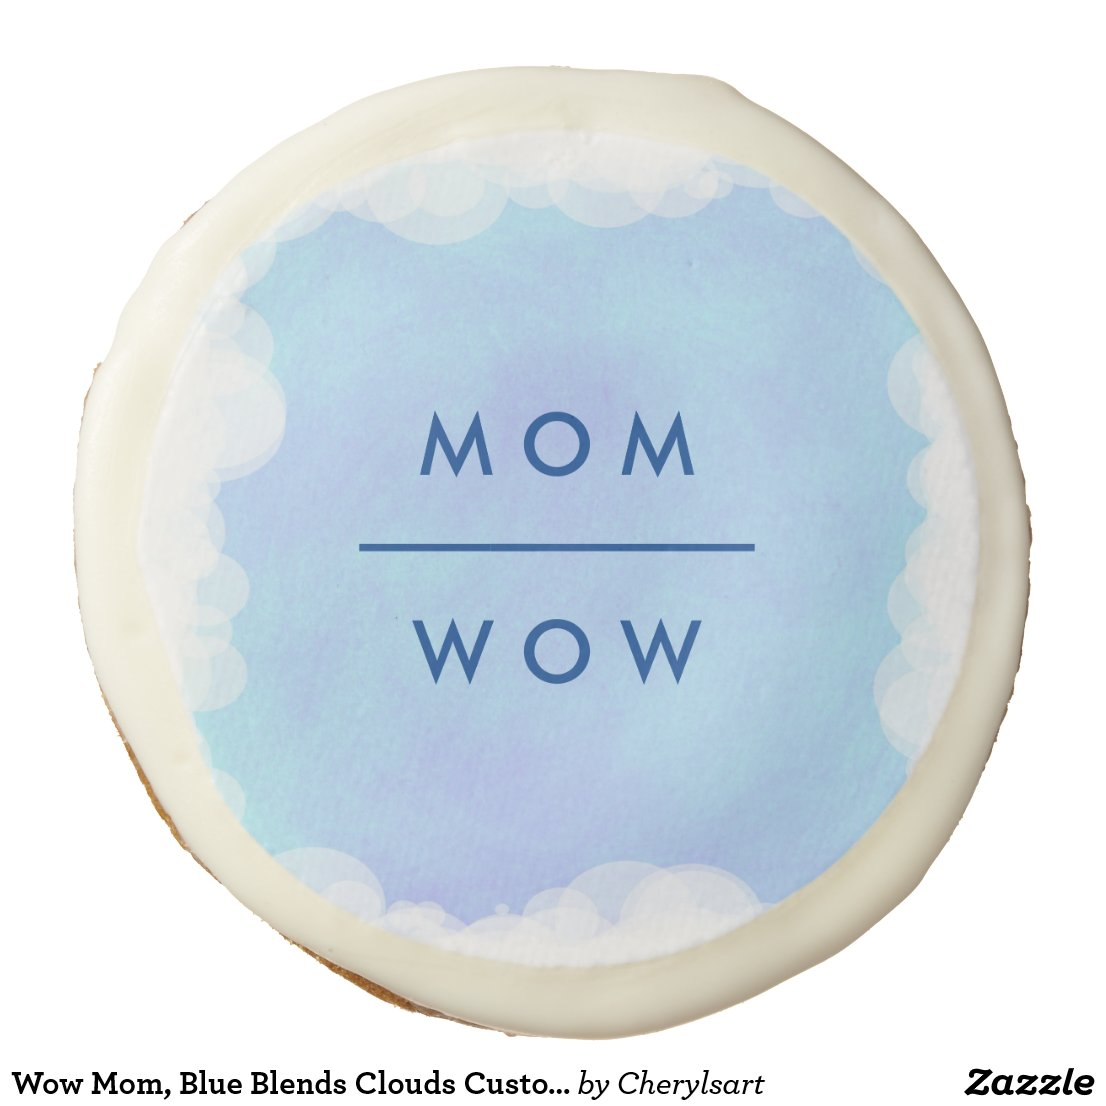 Wow Mom, Blue Blends Clouds Custom Cookies